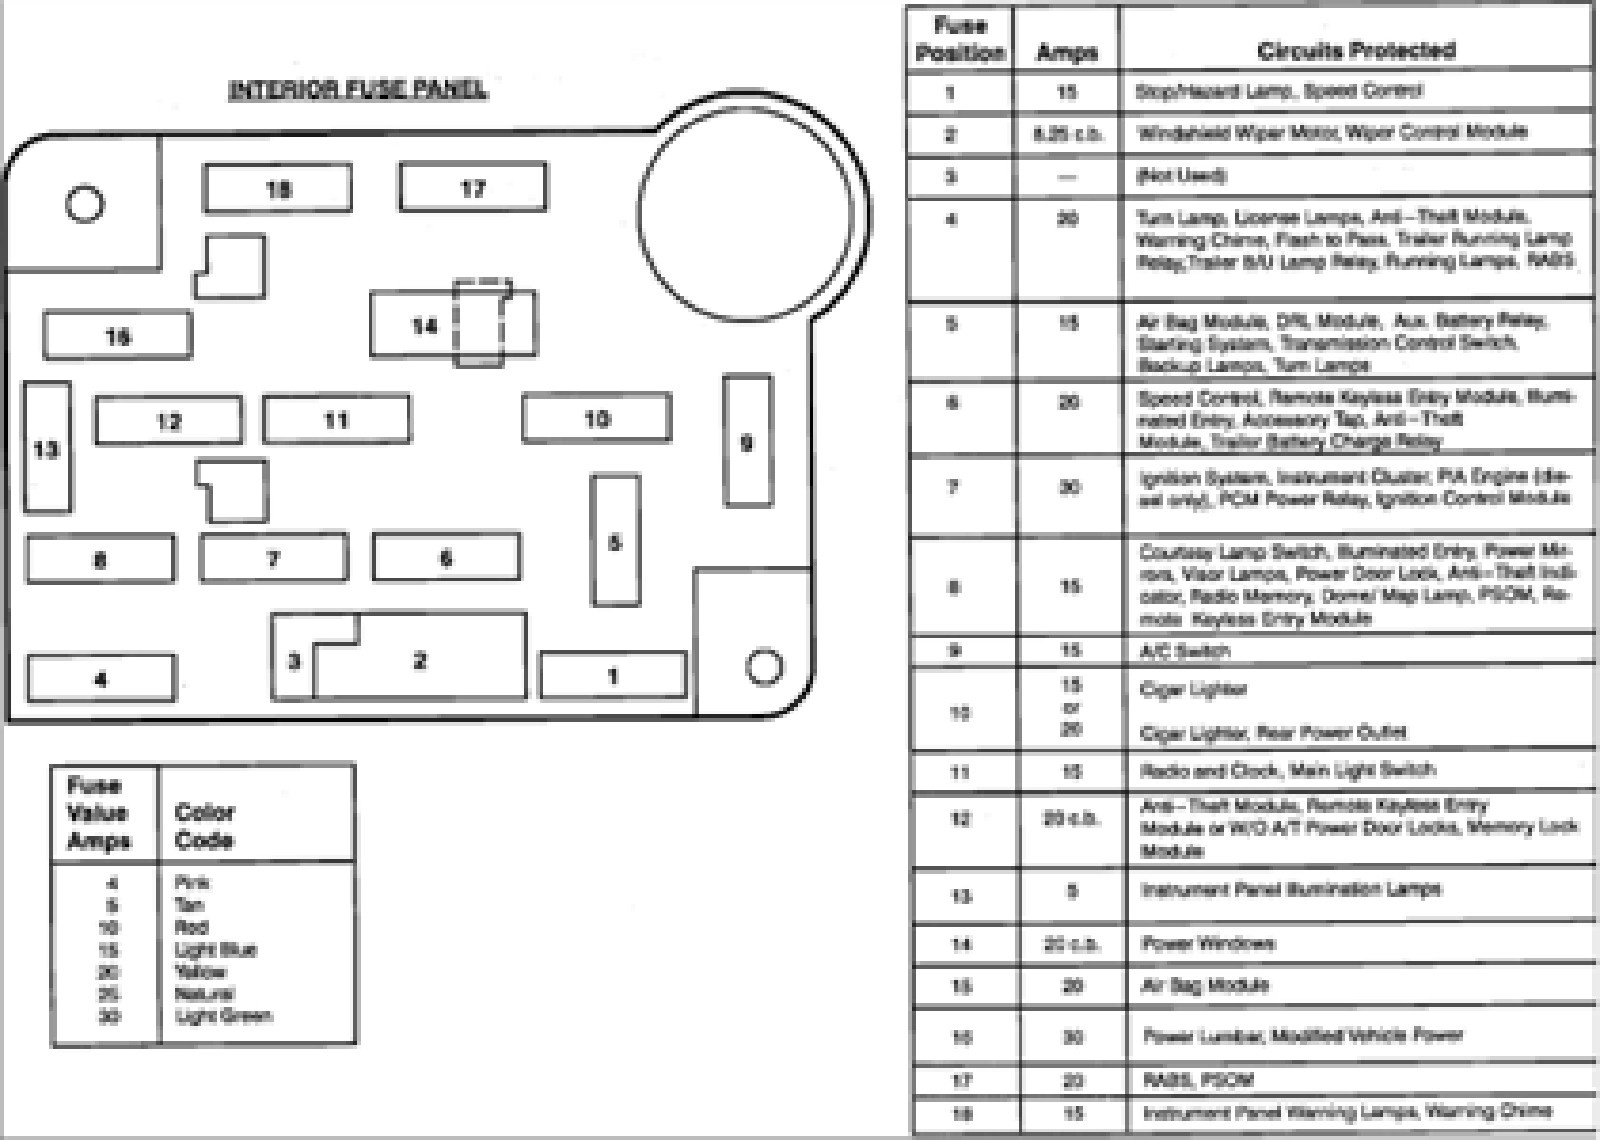 1997 ford aspire fuse box diagram wiring diagram rh 105 raepoppweiss de